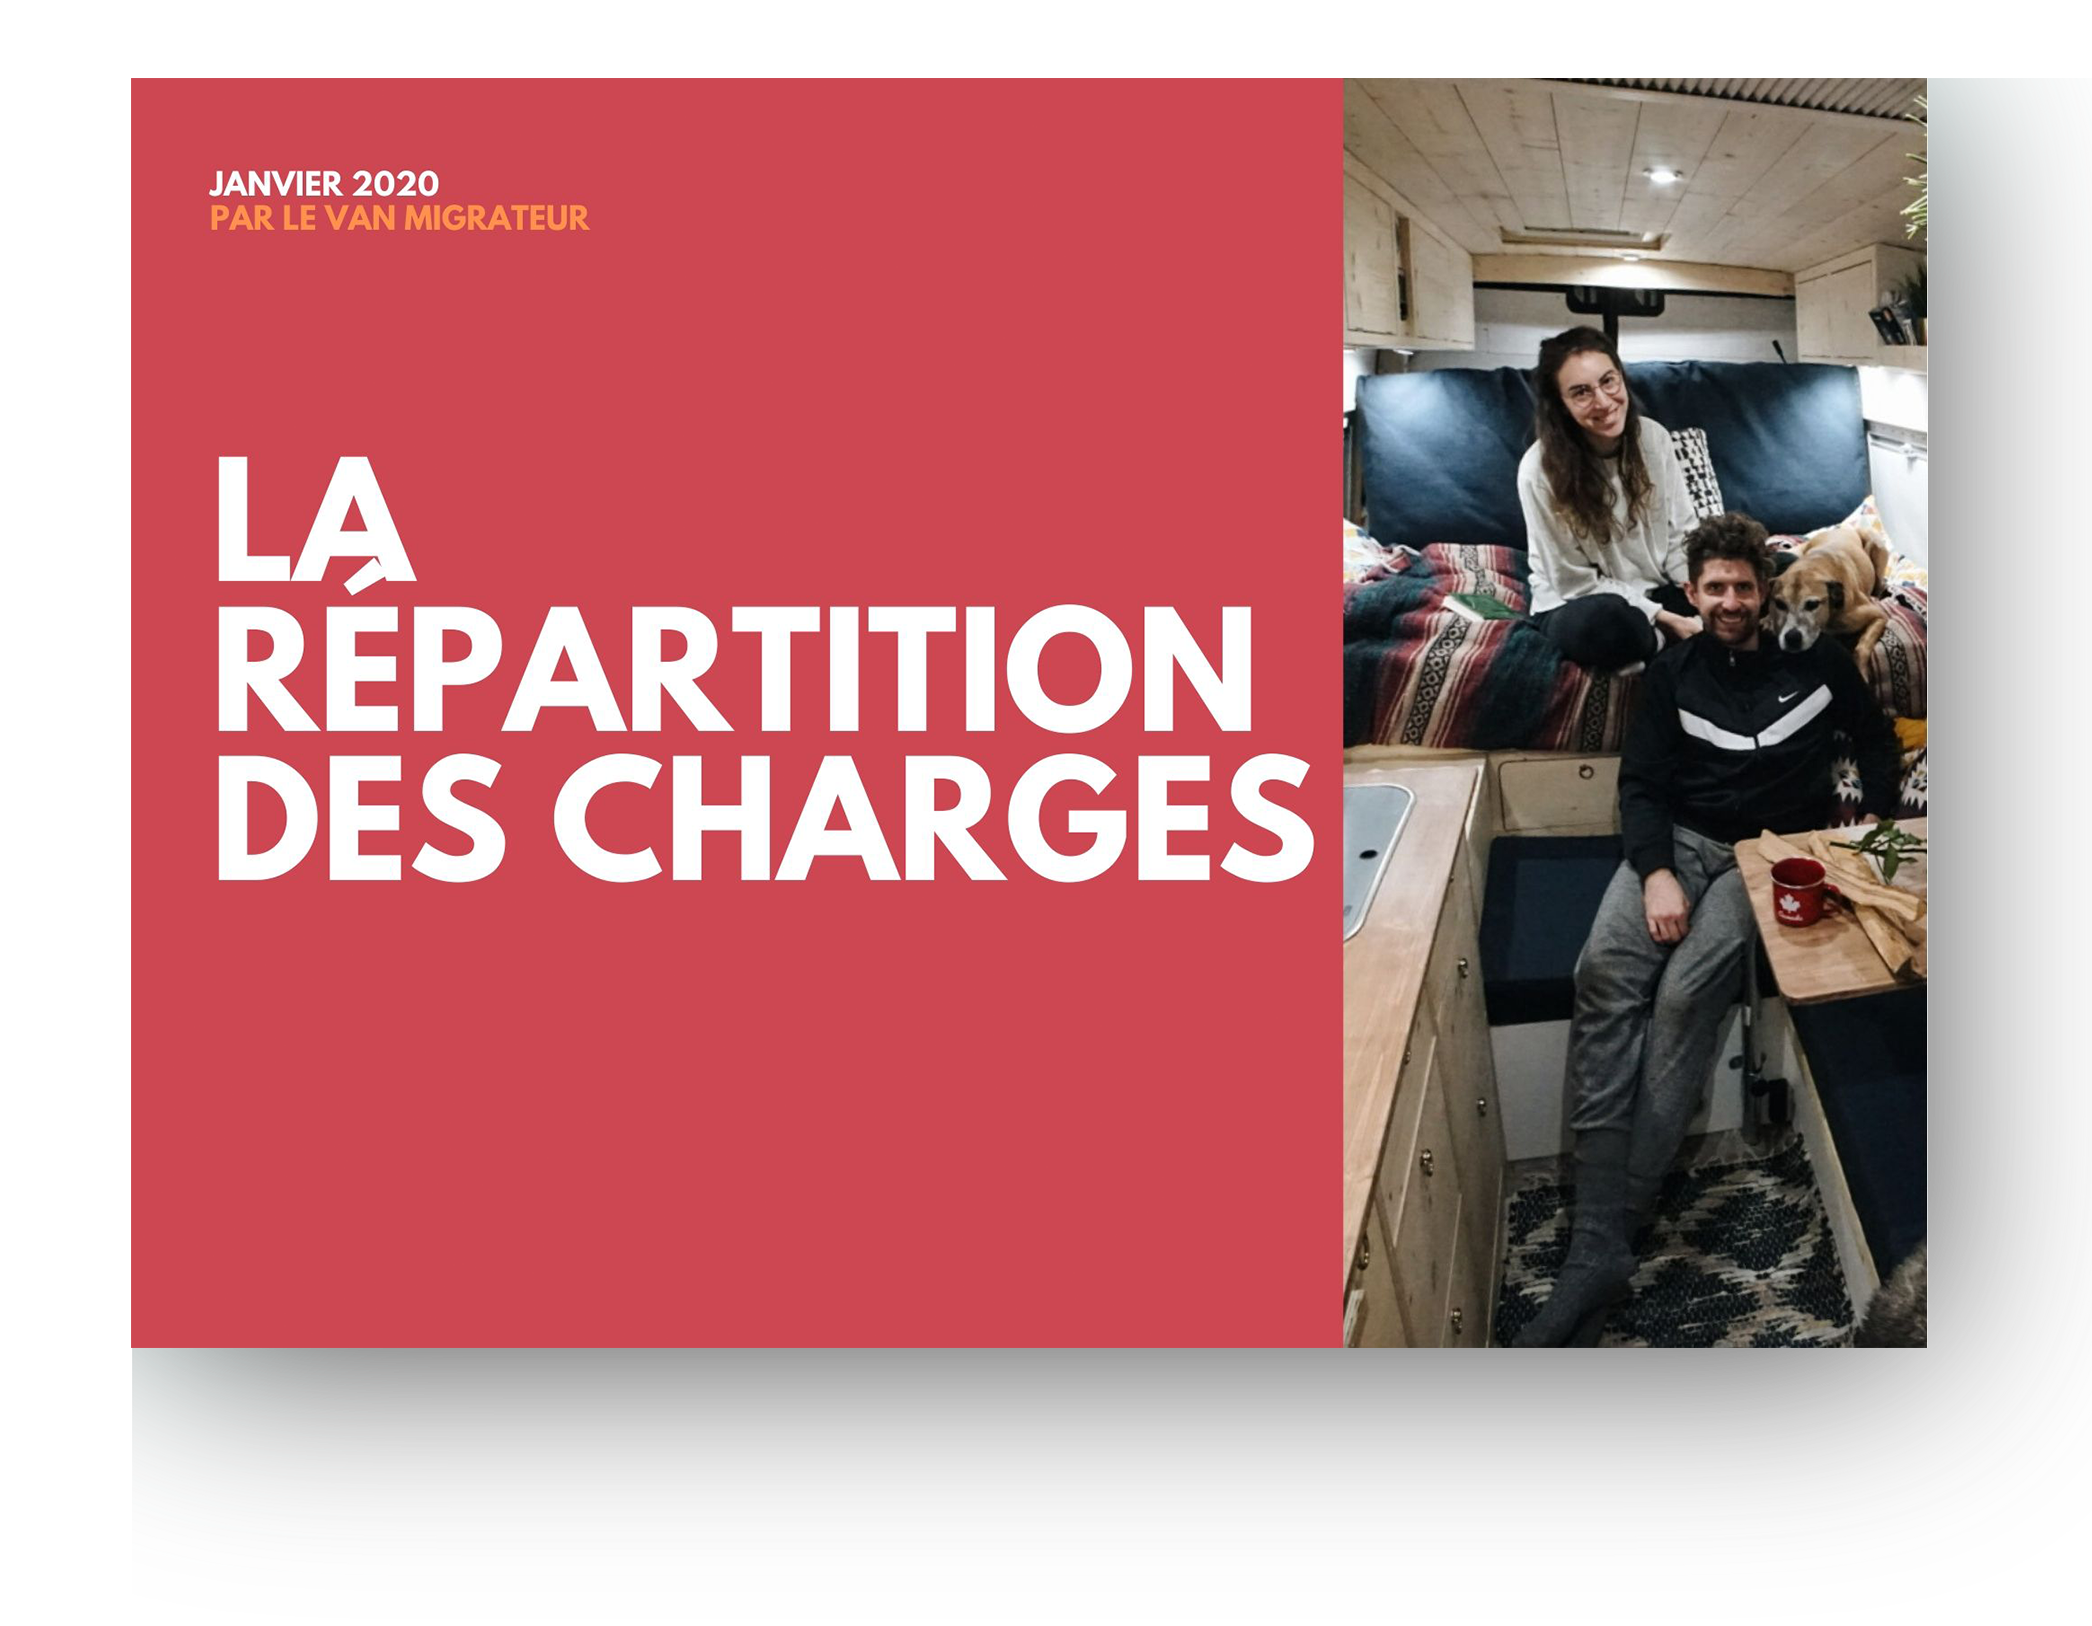 La répartition des charges copie